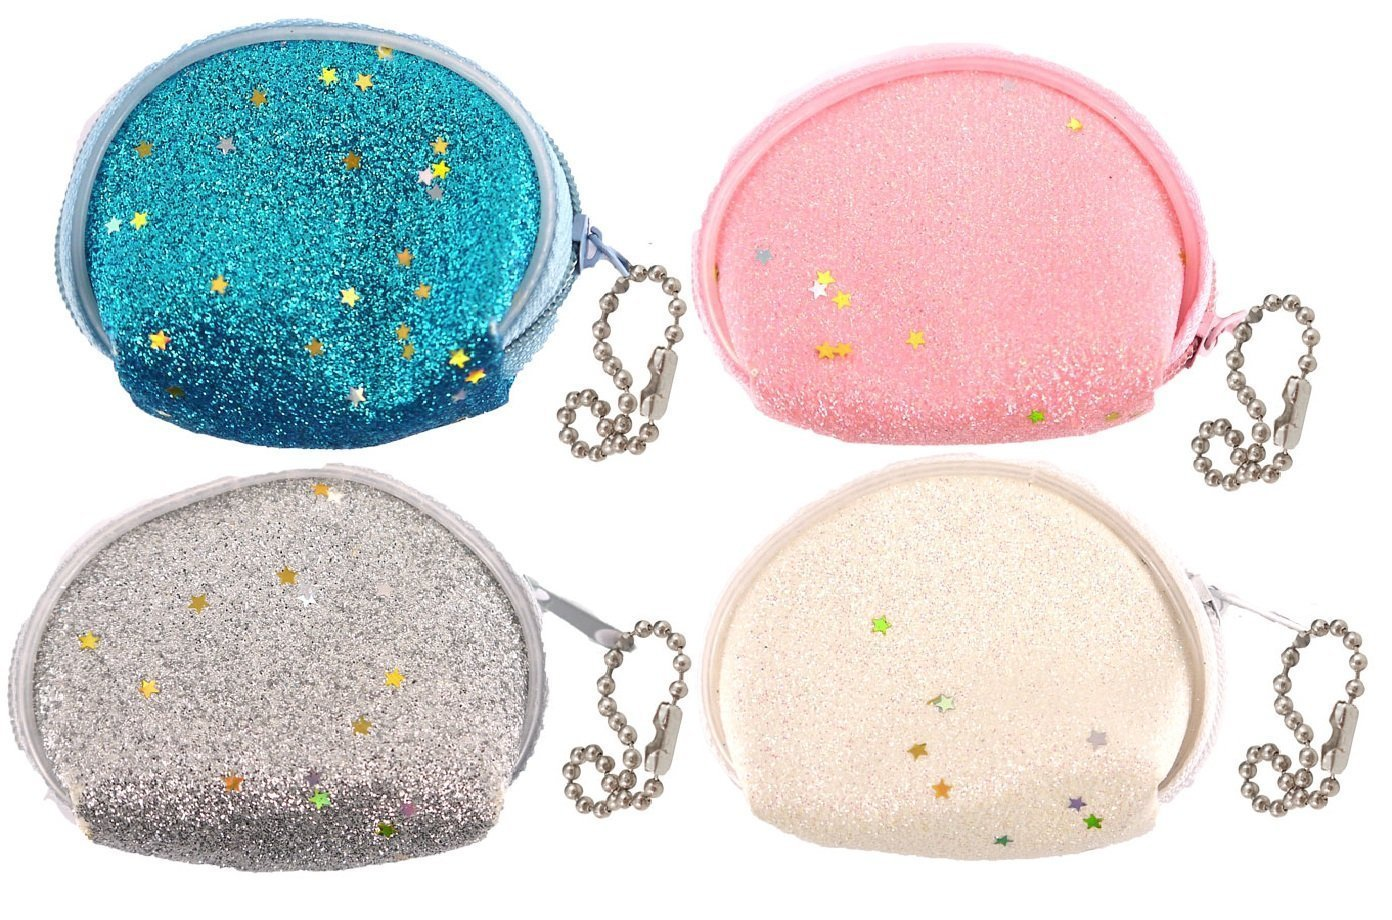 24 x Mini Glitter Purse 6.5cm The Harlequin Brand